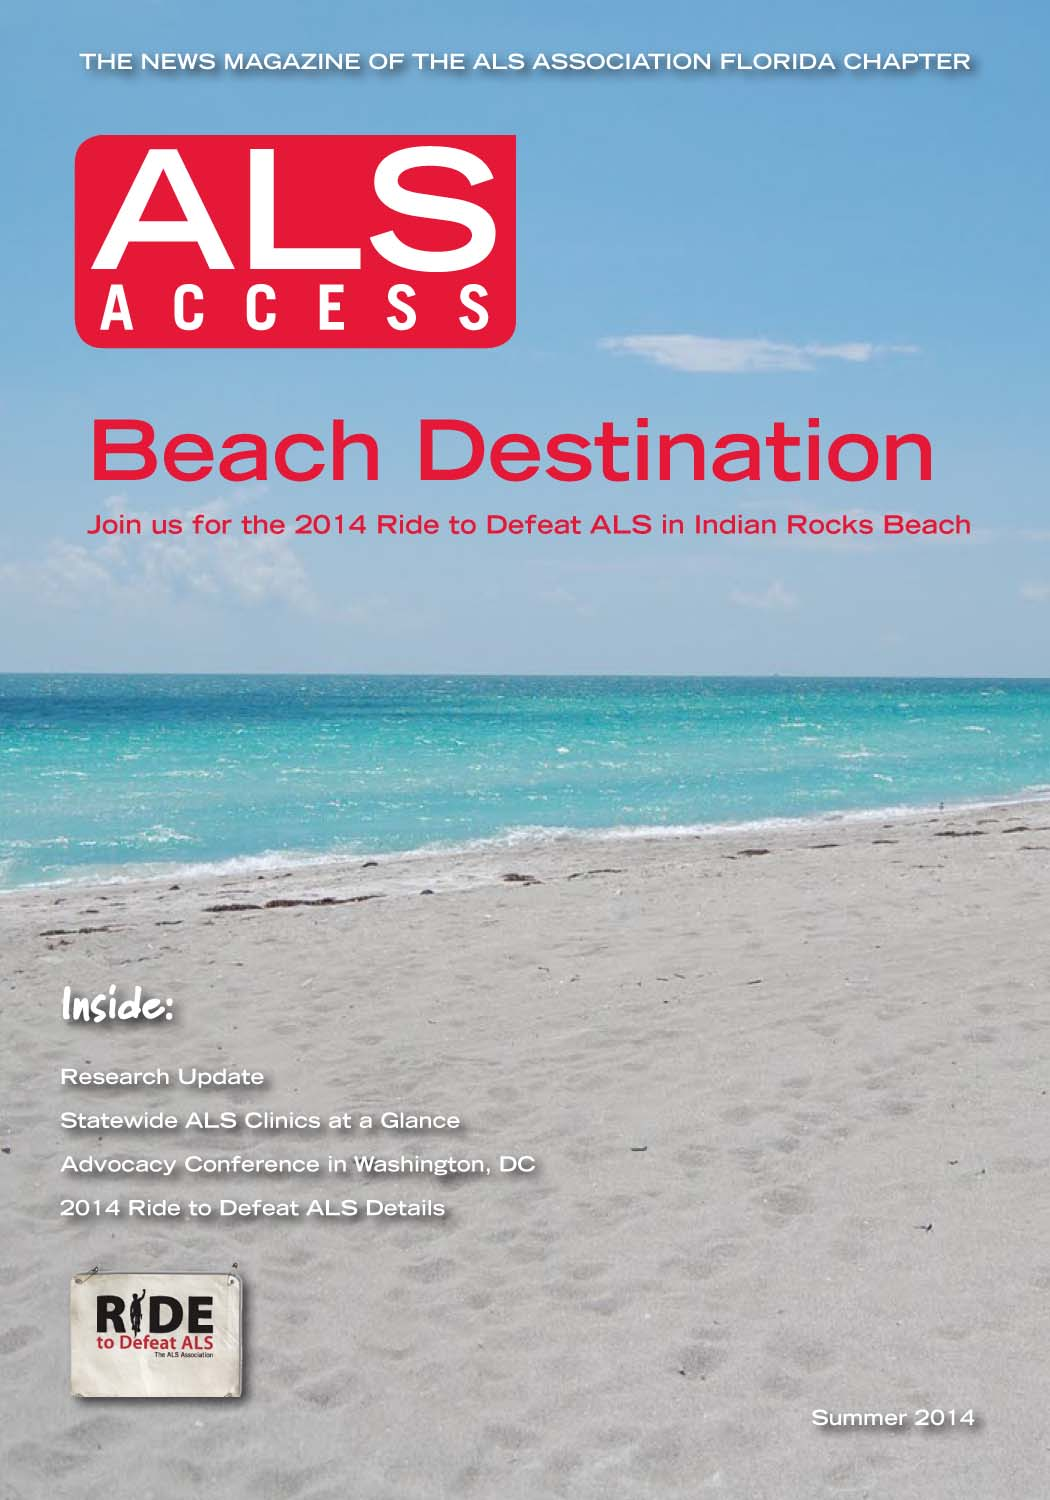 Summer Access Cover 2014.jpg